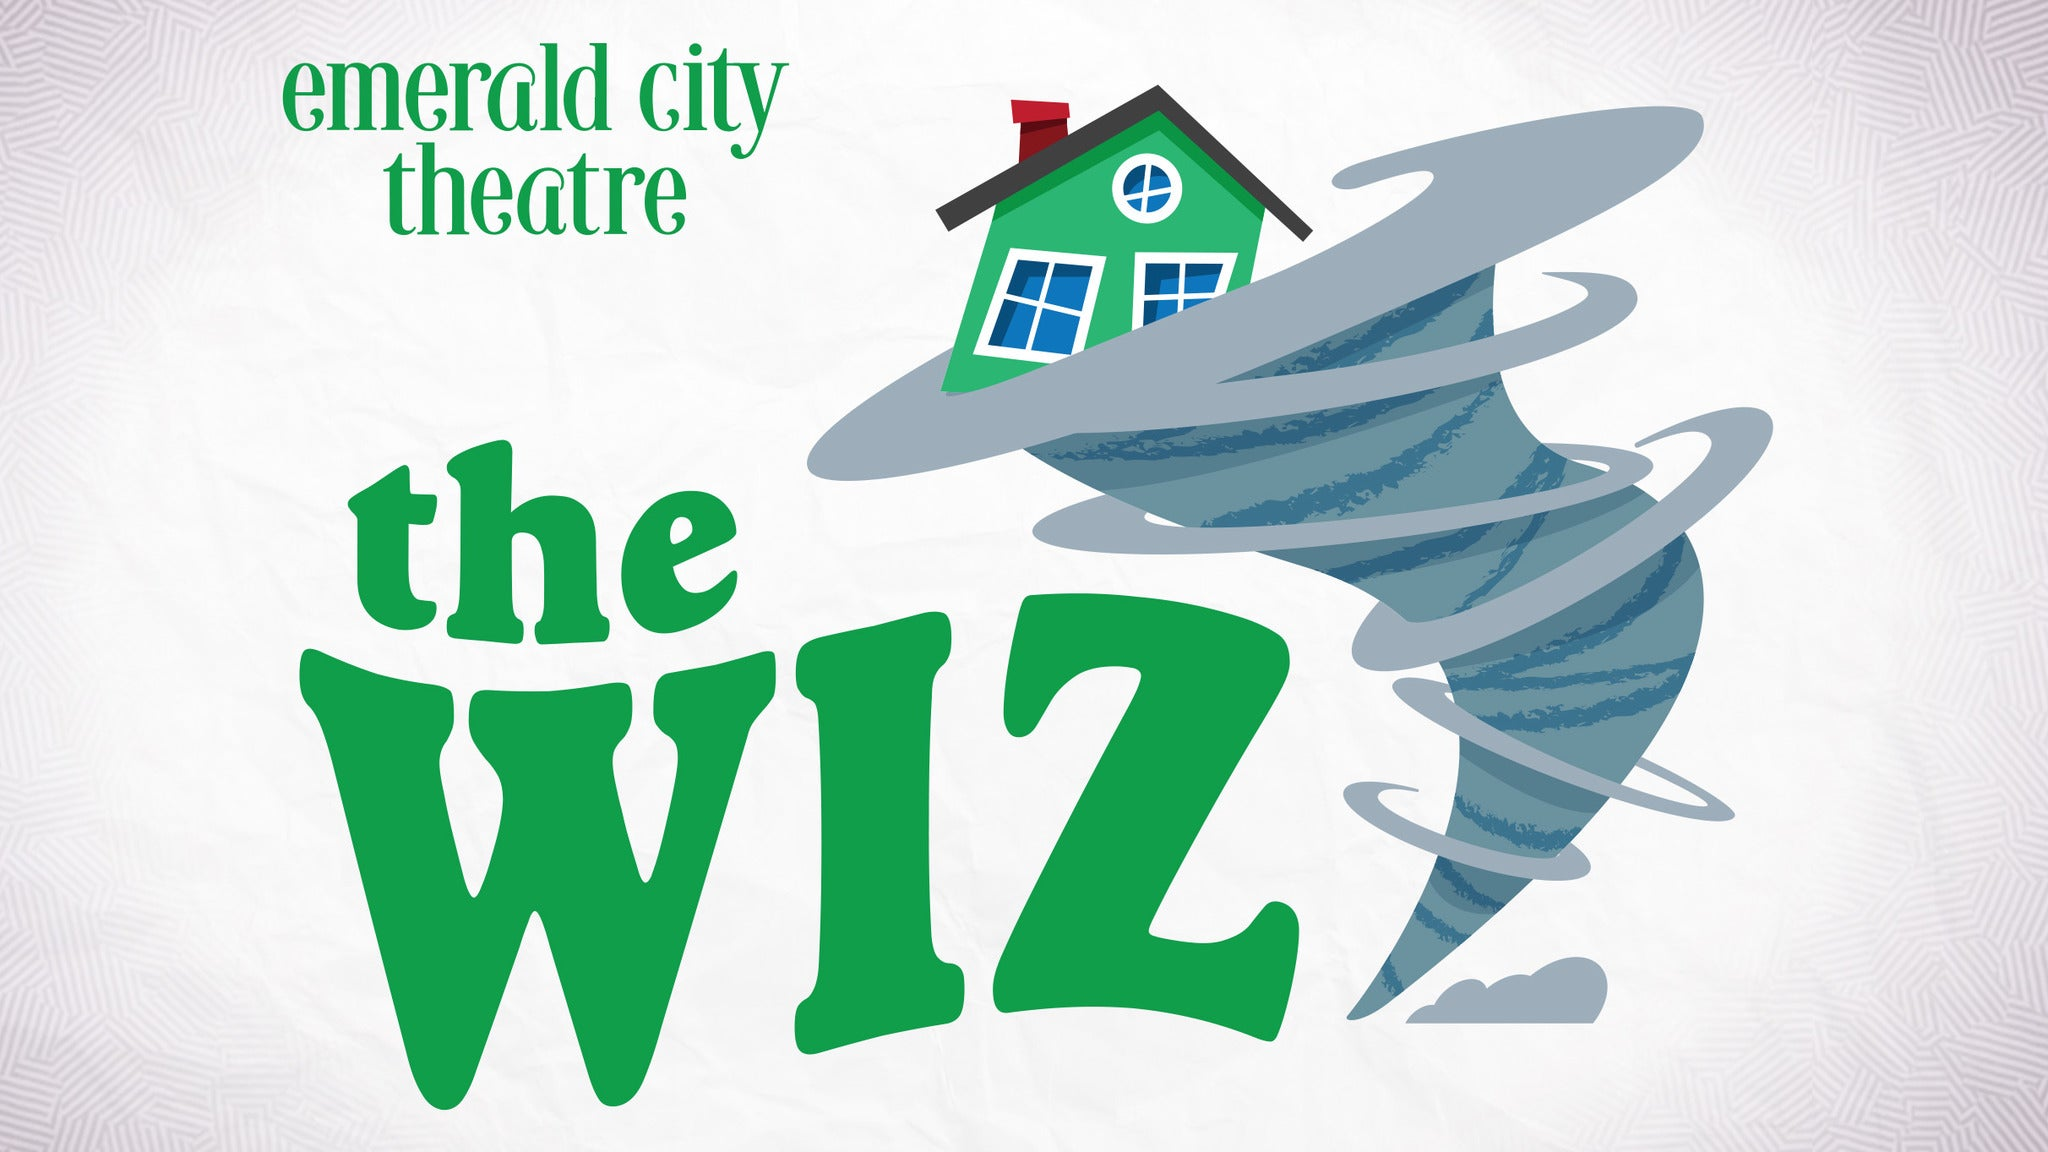 Emerald City Theatre: The Wiz, Jr. at Apollo Theater - Chicago, IL 60614